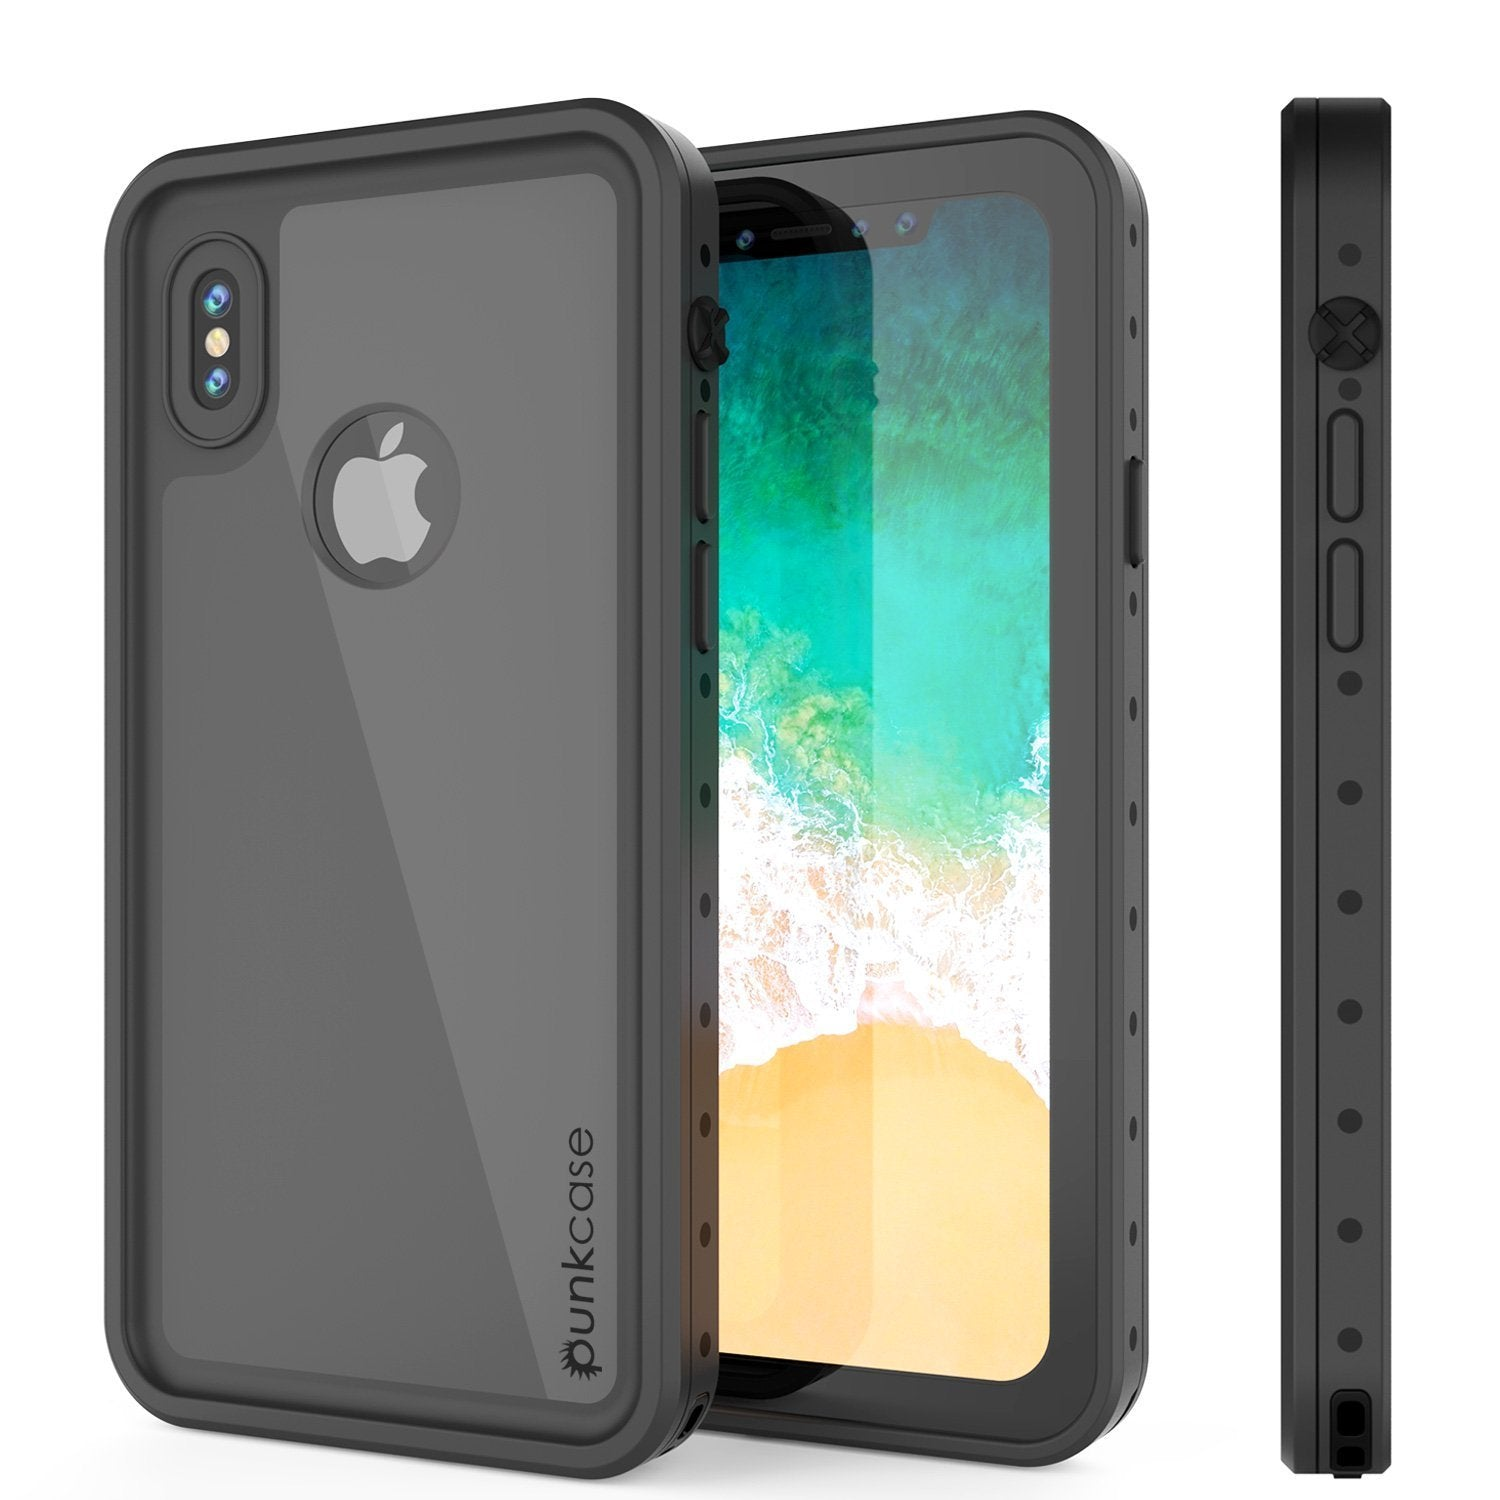 iPhone XR Waterproof IP68 Case, Punkcase [Black] [StudStar Series] [Slim Fit] - PunkCase NZ